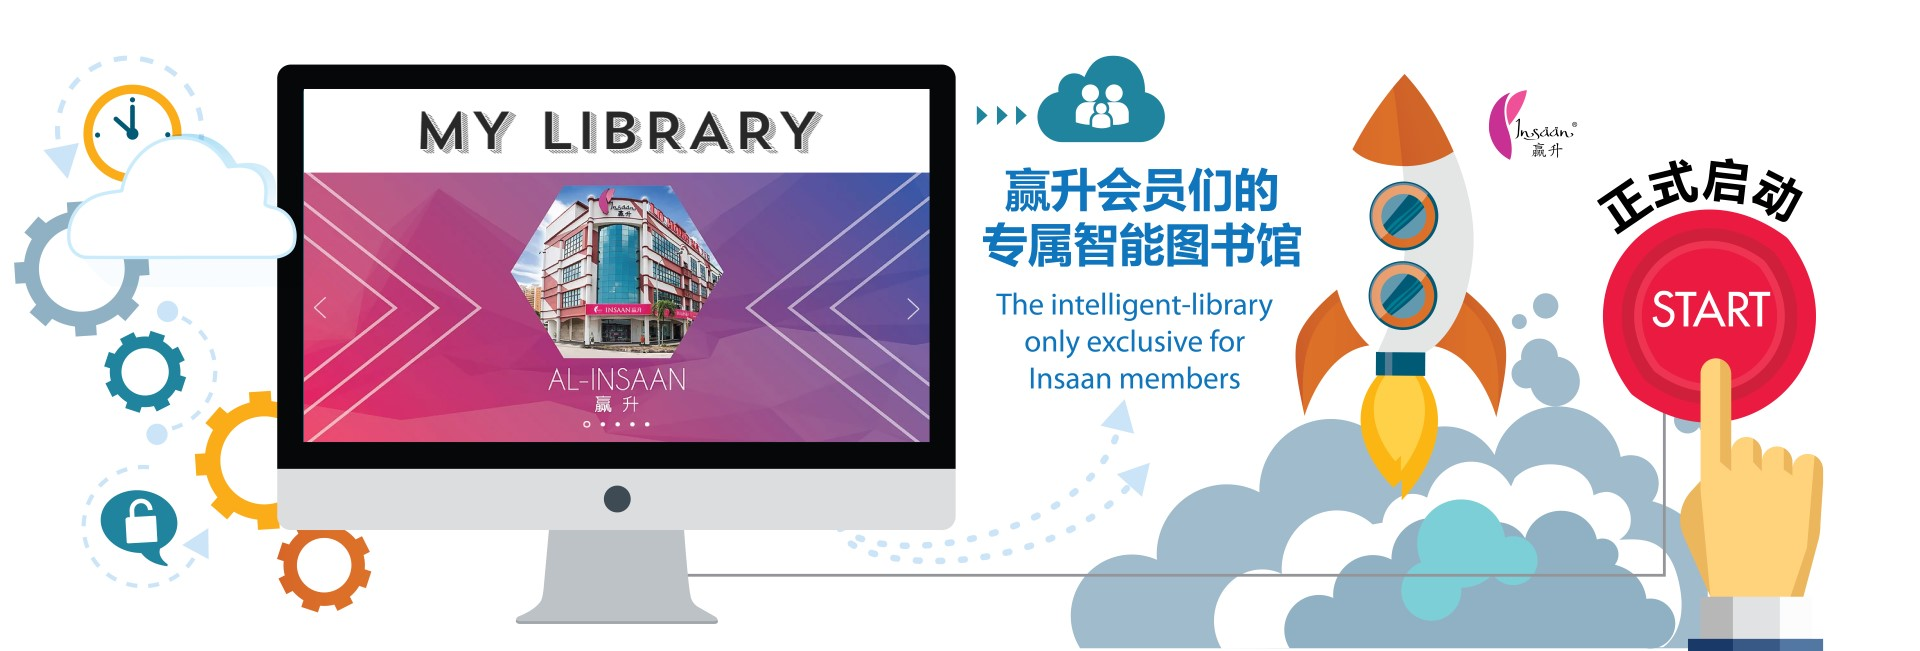 My Library Banner 01